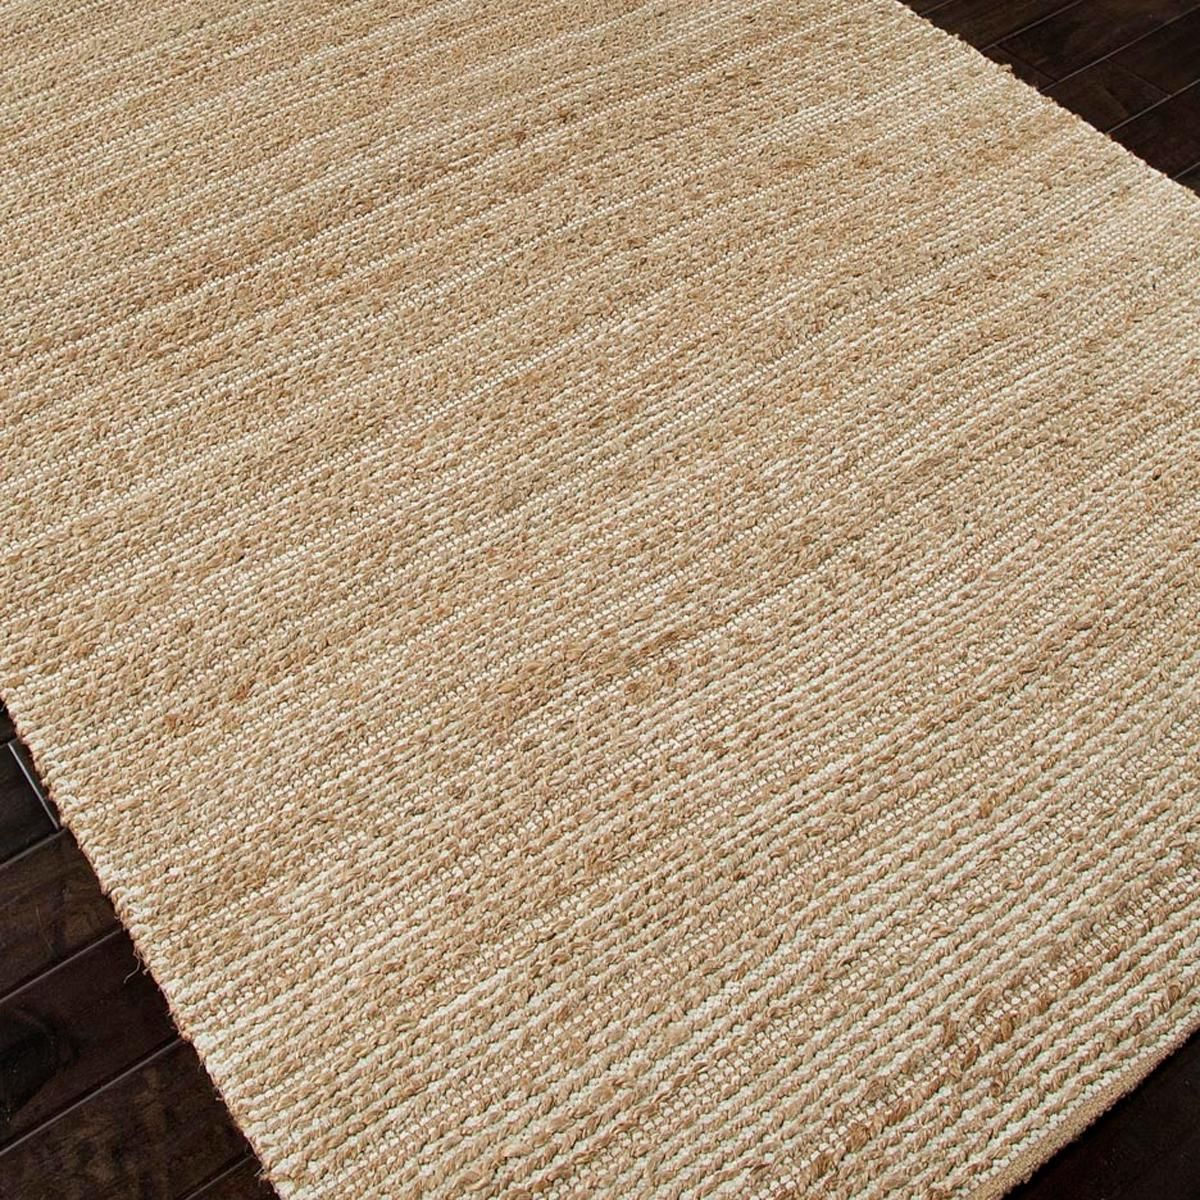 Gypsy Stripe Turquoise Grey Woven Cotton Rug: Chenille Texture Subtle Stripe Rug